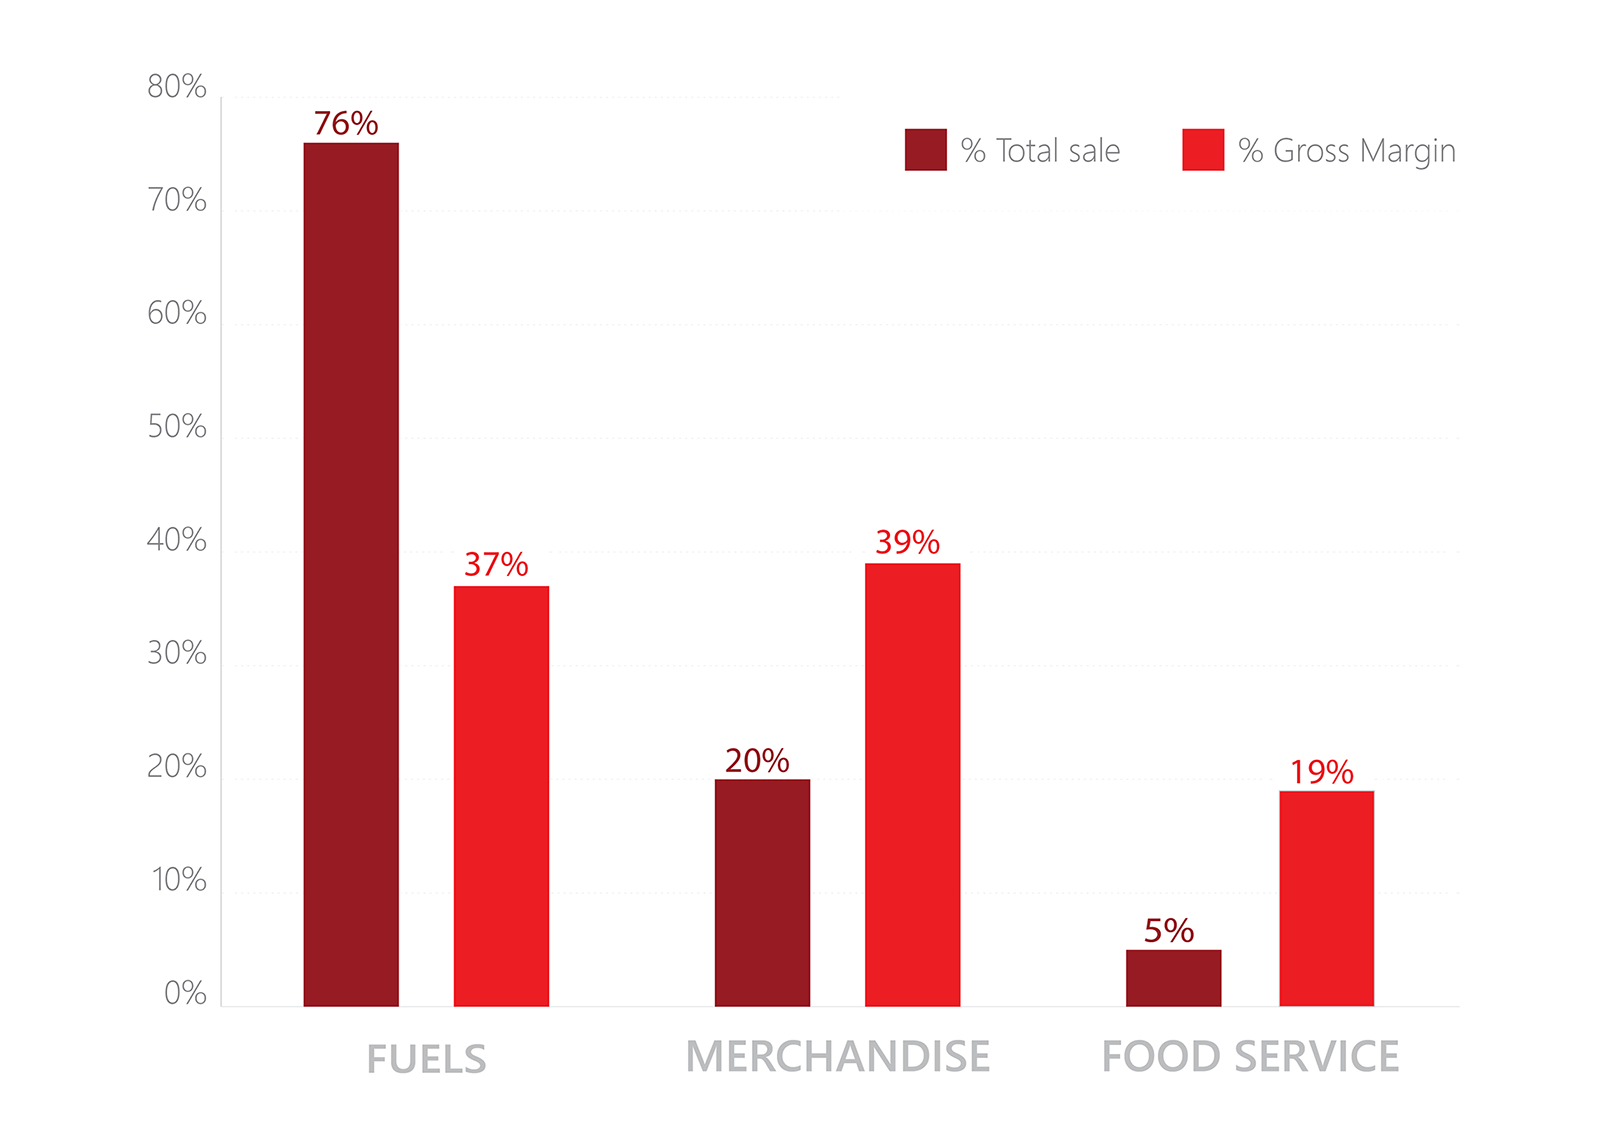 C-Store Sales 2014 (% total sale): Fuels - 76%; Merchandise - 20%; Food Service - 19%.